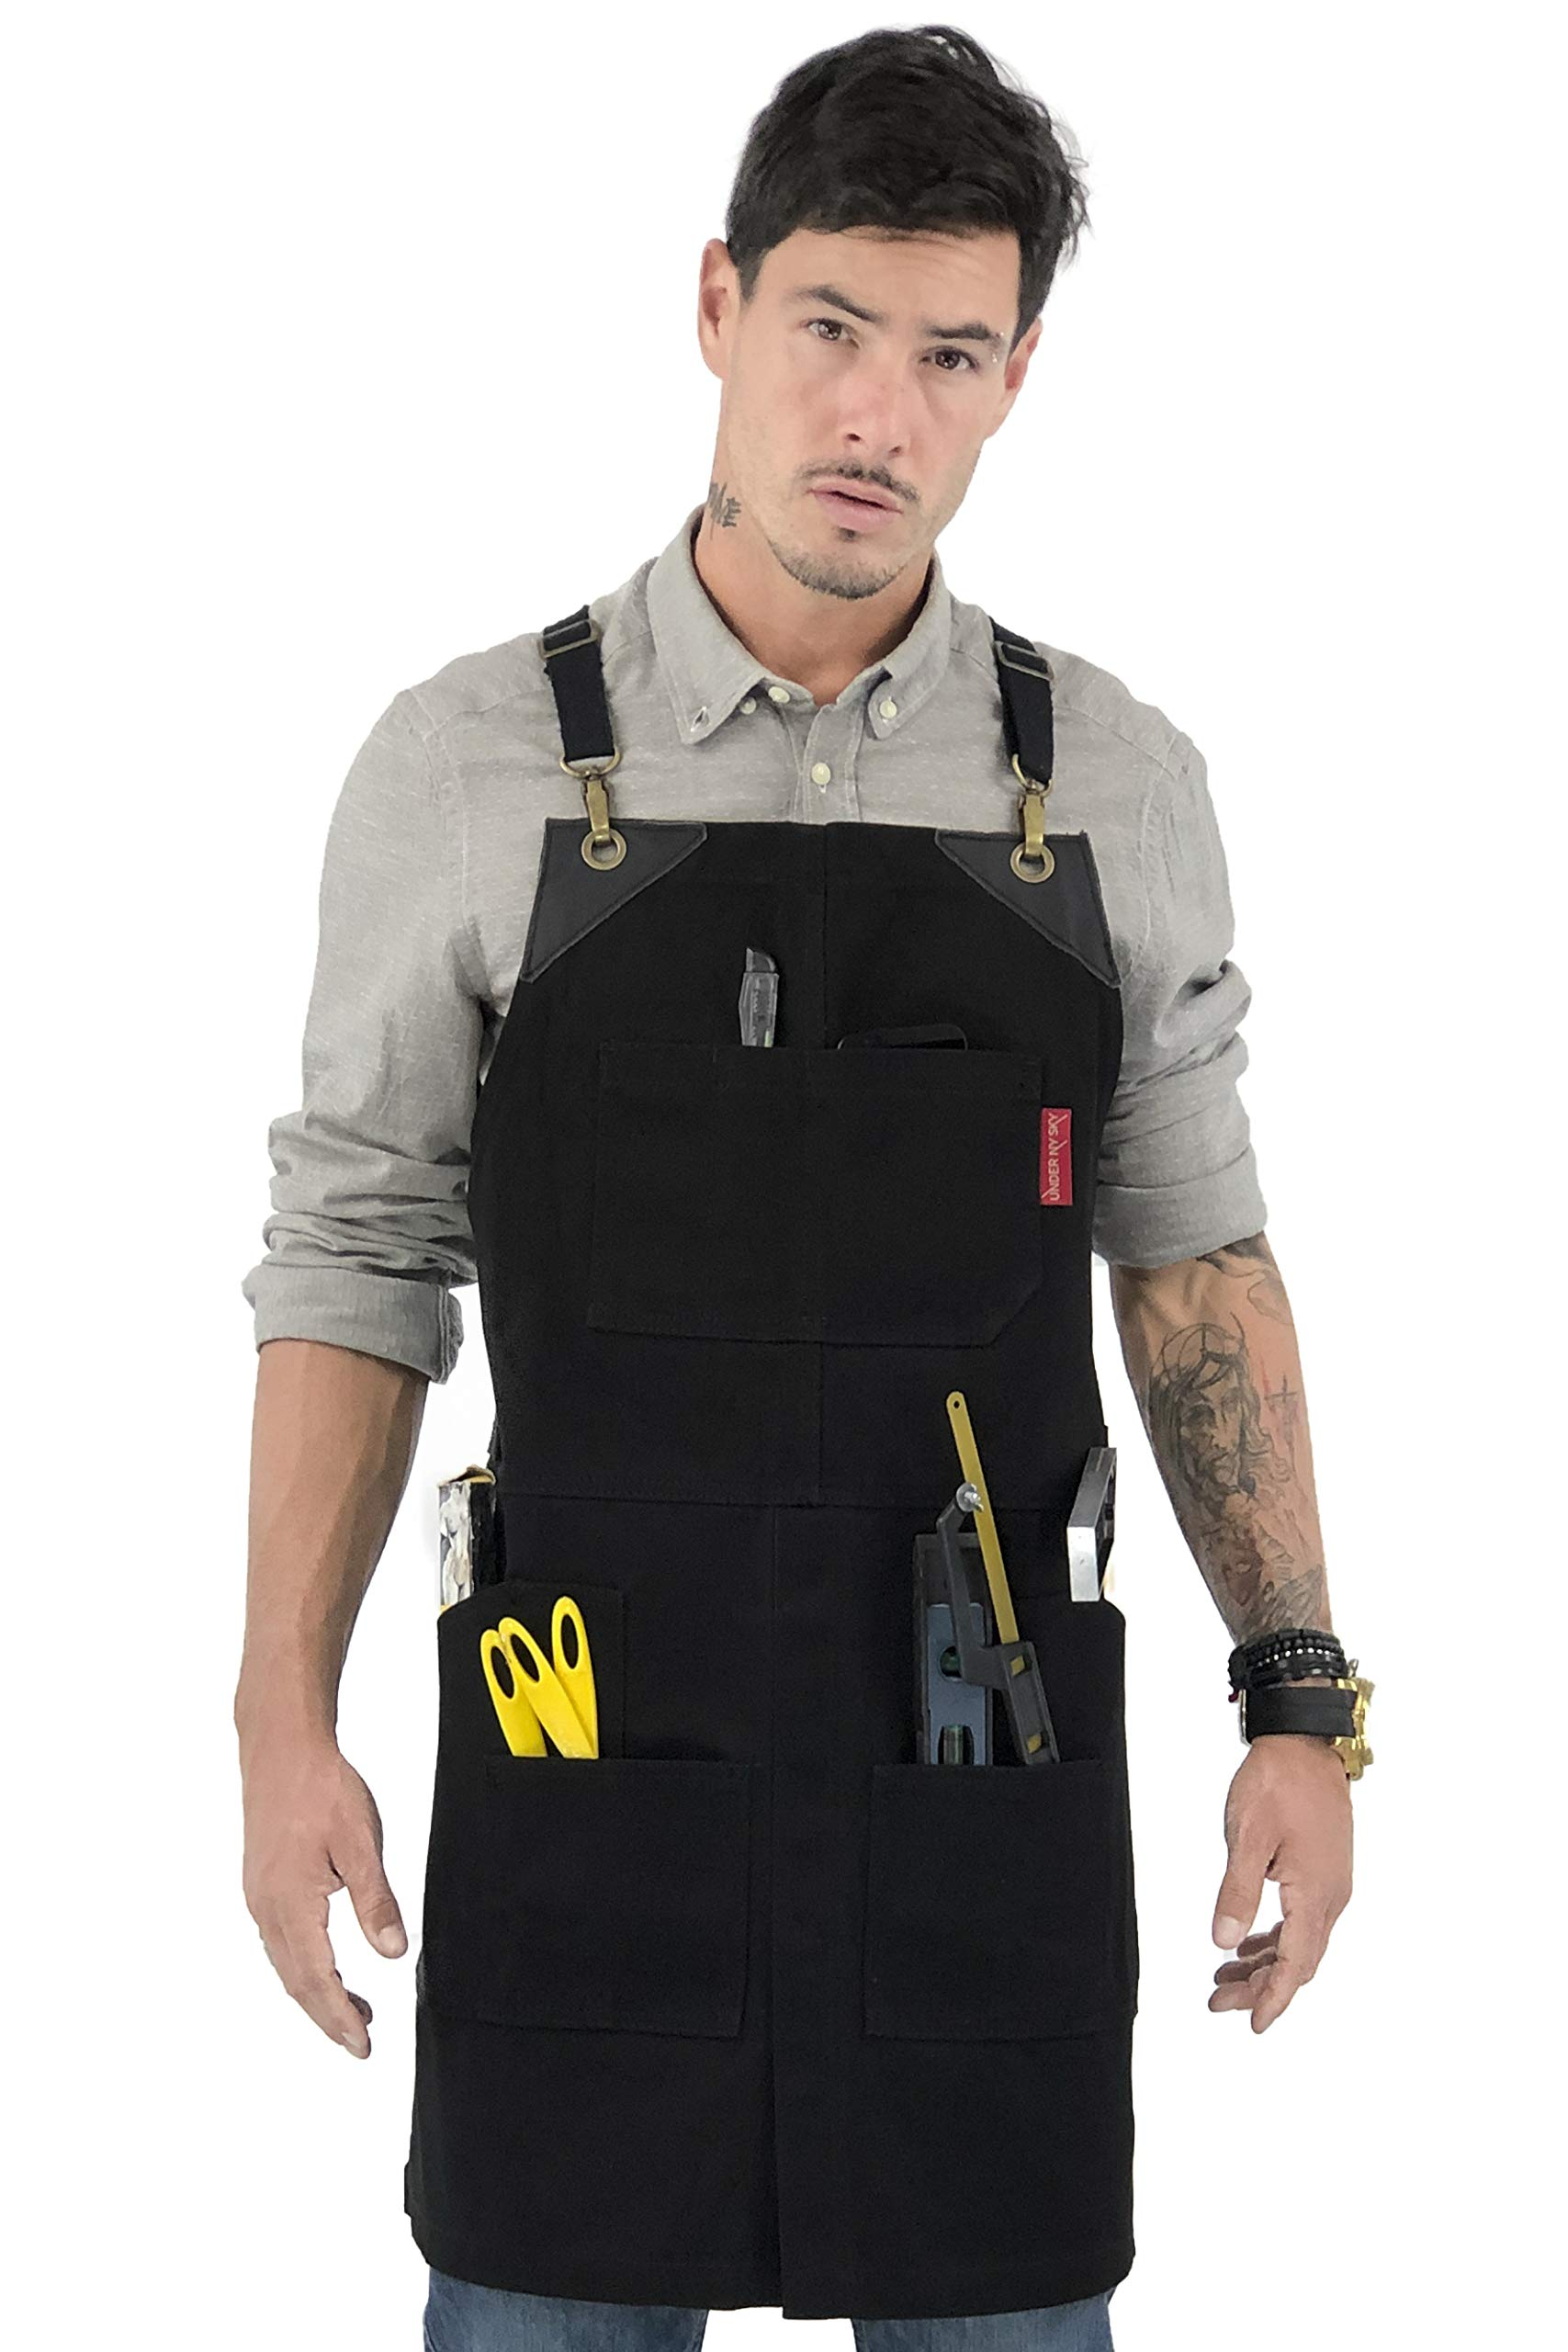 Under NY Sky Cargo Ink Black Apron – Cross-Back with Heavy-Duty Waxed Canvas, Leather Reinforcement and Split-Leg – Adjustable for Men and Women – Pro Woodworker, Mechanic, Welder, Artist Aprons